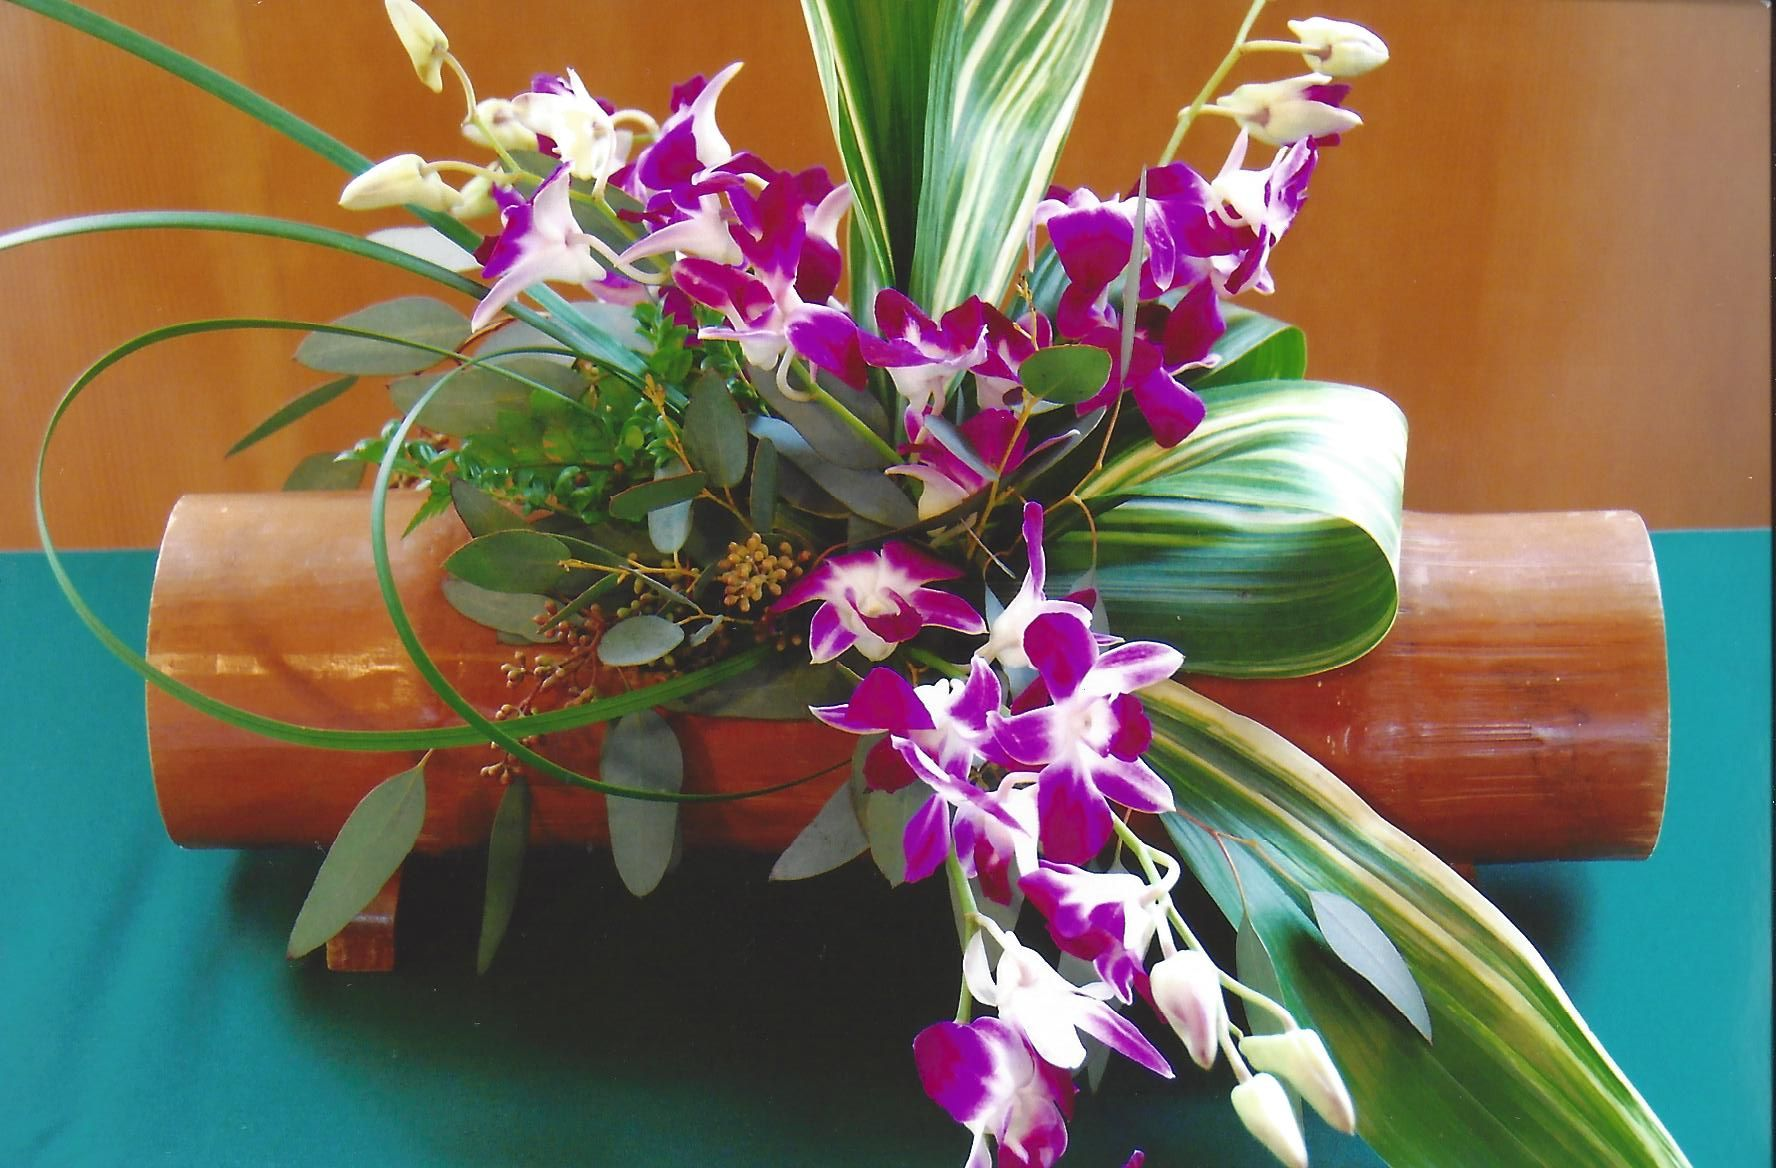 Dendrobium Orchid Exotic Arrangement in a Bamboo Design Container #TropicalWedding #Centepieces #TropicalFlowers #DuaneCruz